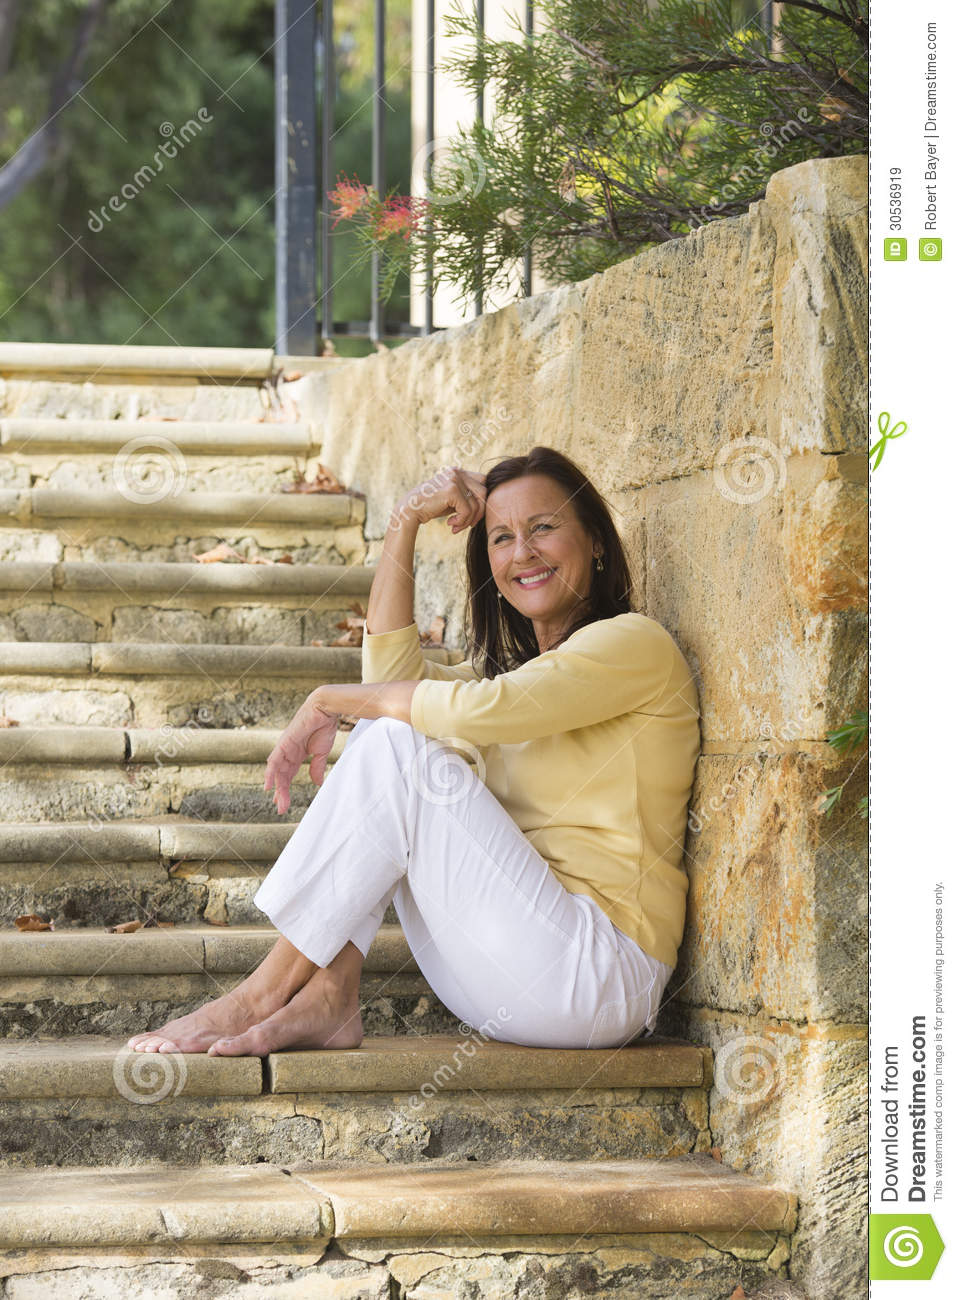 Relaxed Smiling Mature Woman Outdoor Royalty Free Stock Images - Image ...